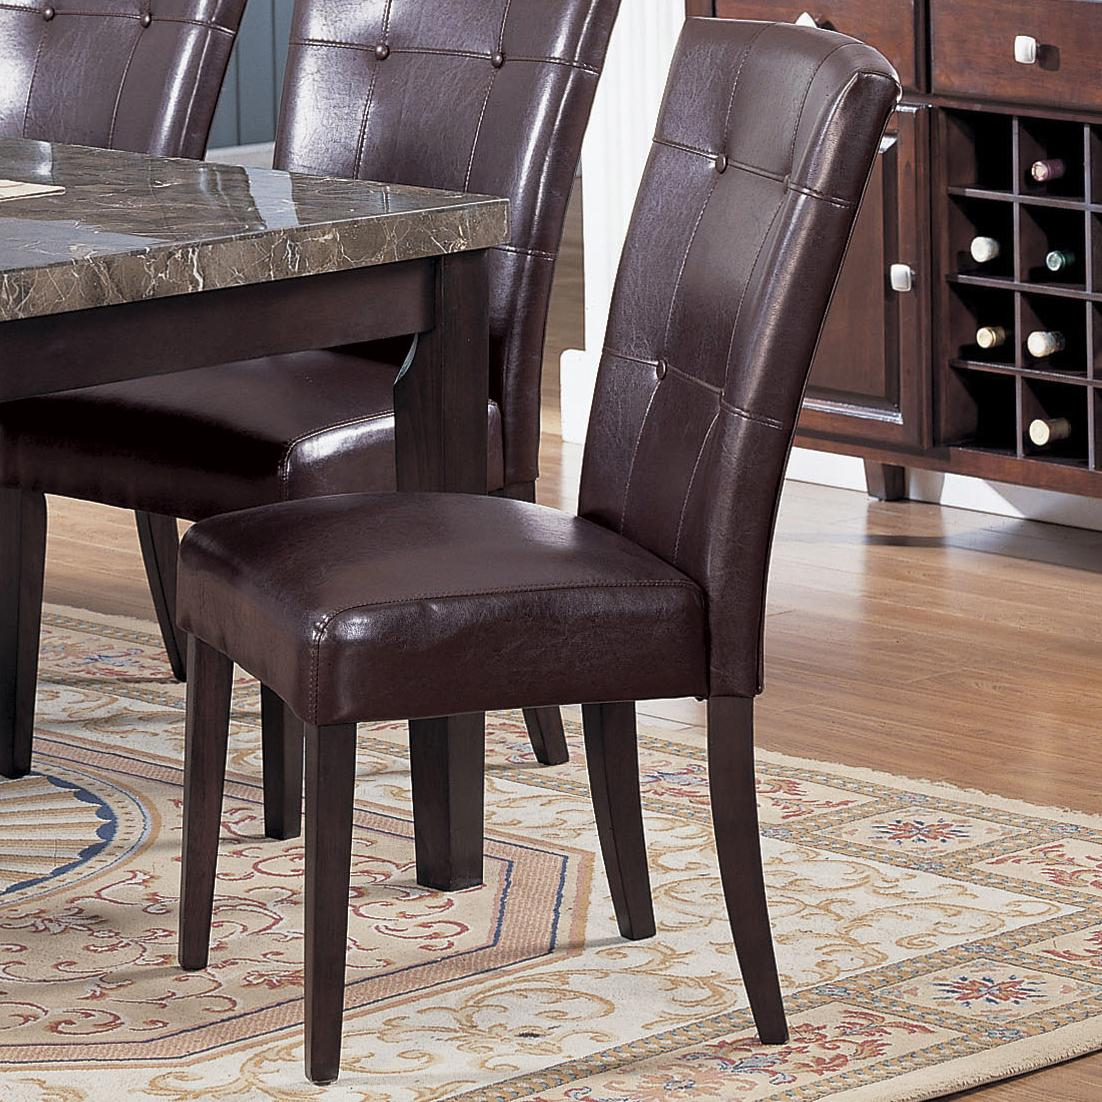 Acme Furniture 7058 Bycast Side Chair - Item Number: 7054